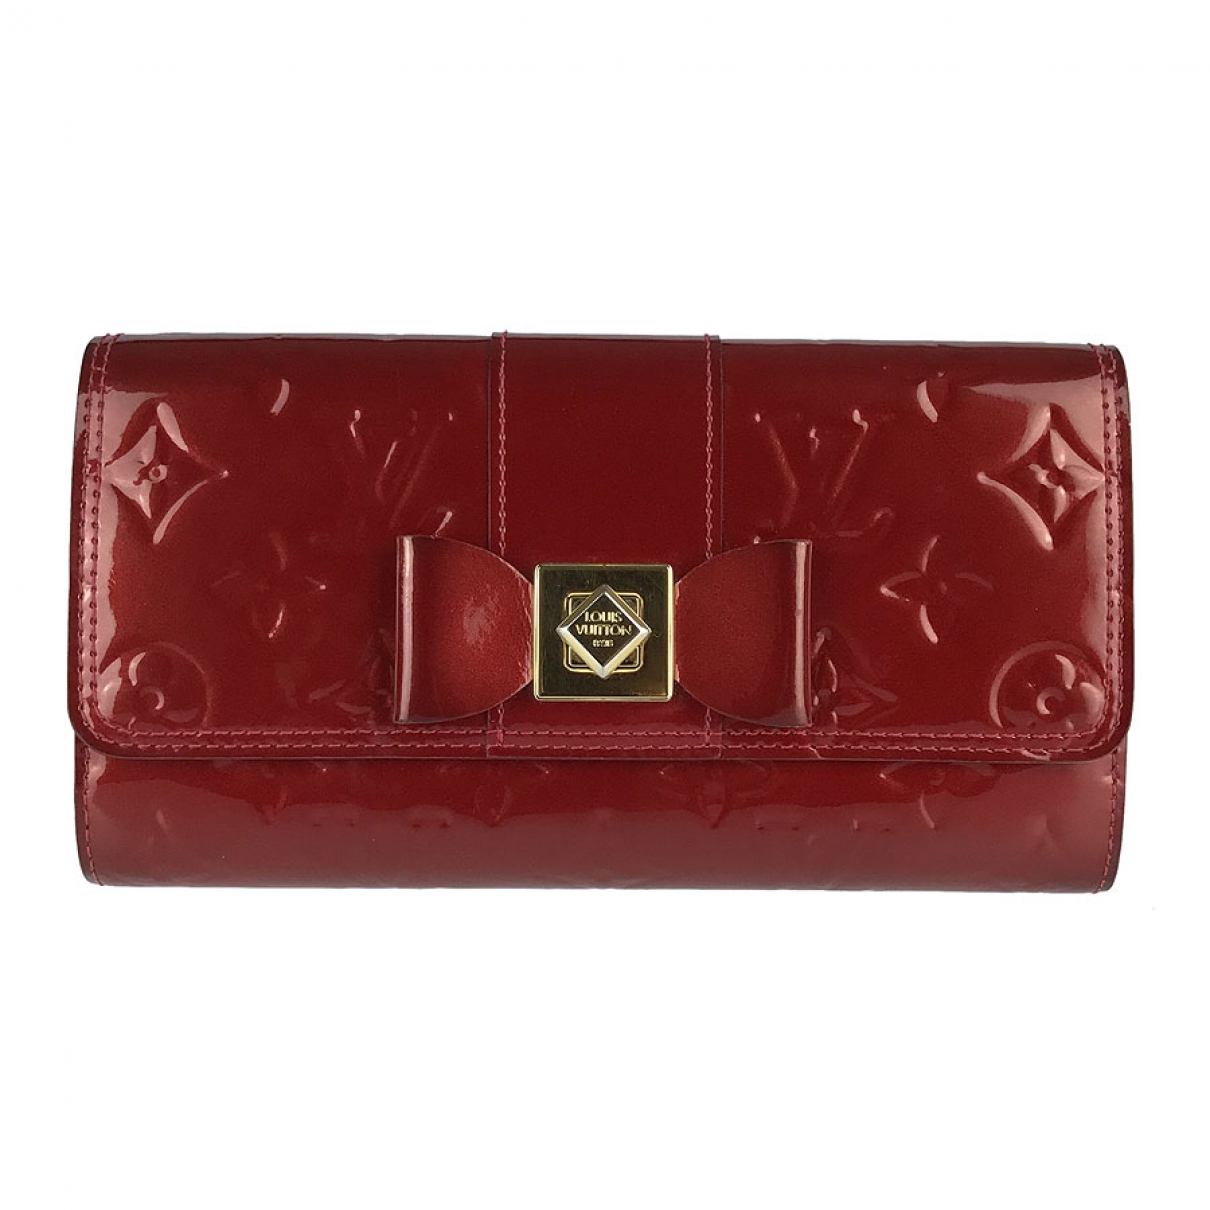 Louis Vuitton \N Red Patent leather wallet for Women \N